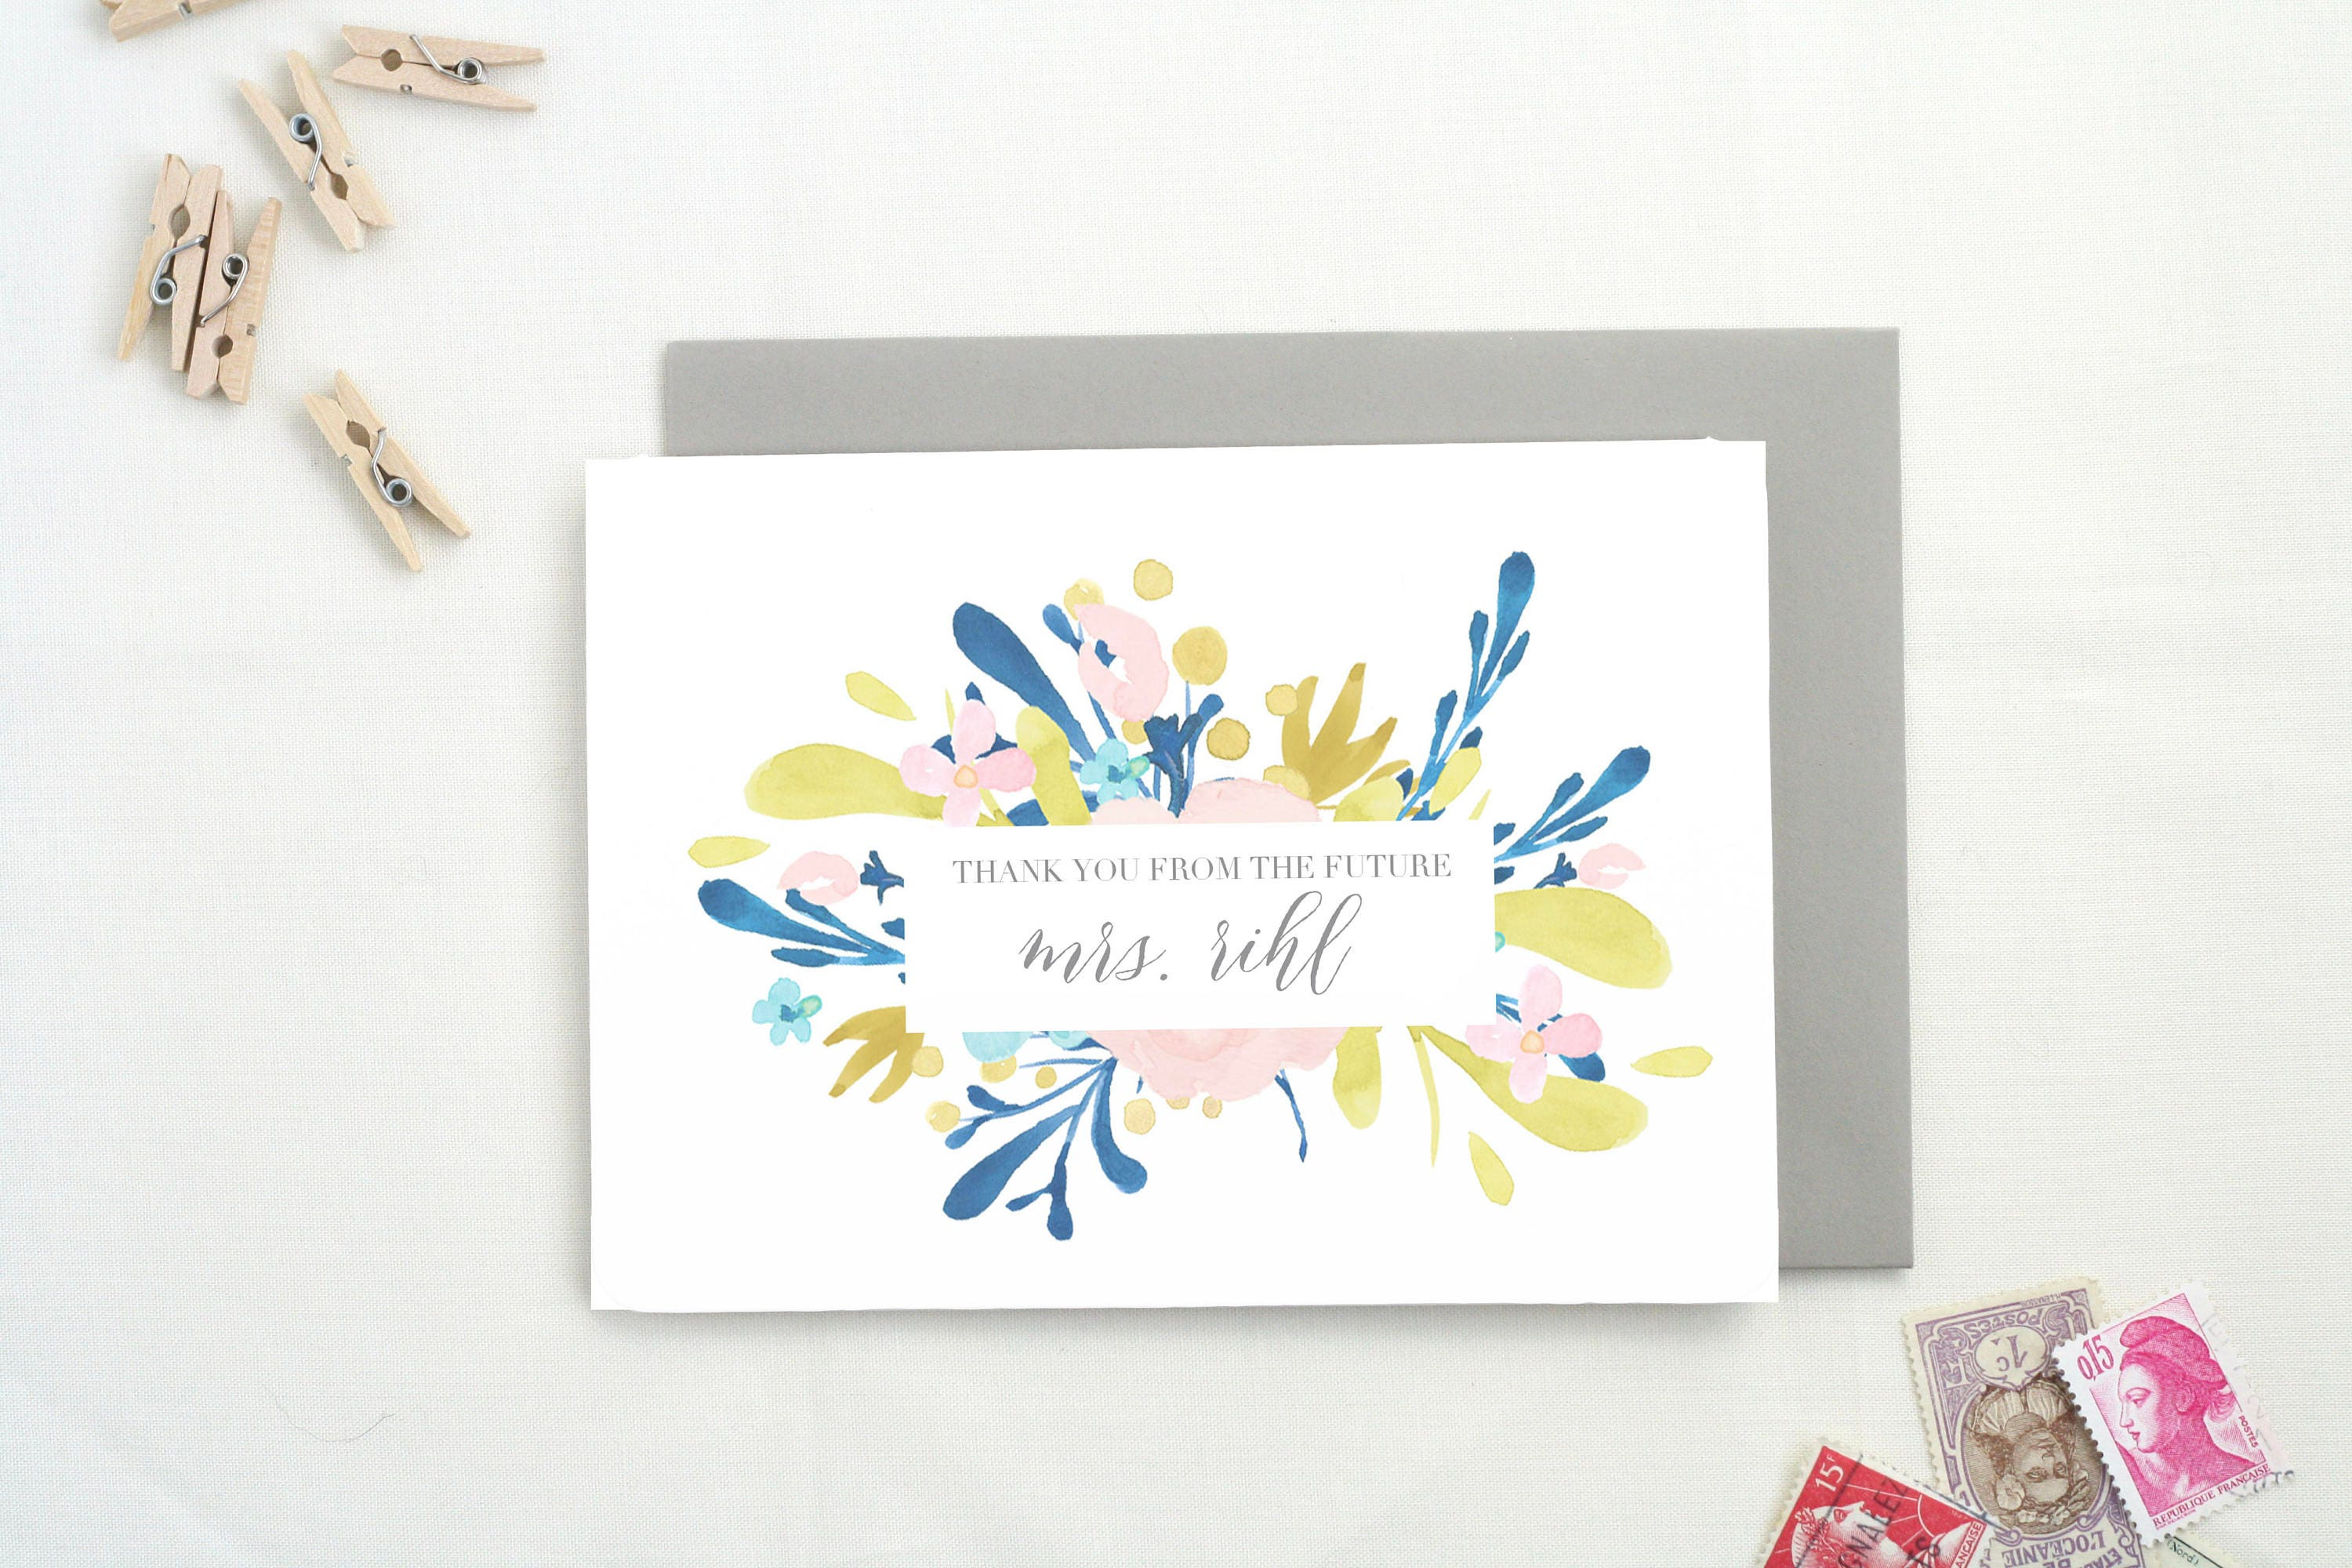 Wedding Shower Gifts For Her: Gifts For Her 2016. Thank You Cards Wedding Shower. Newly